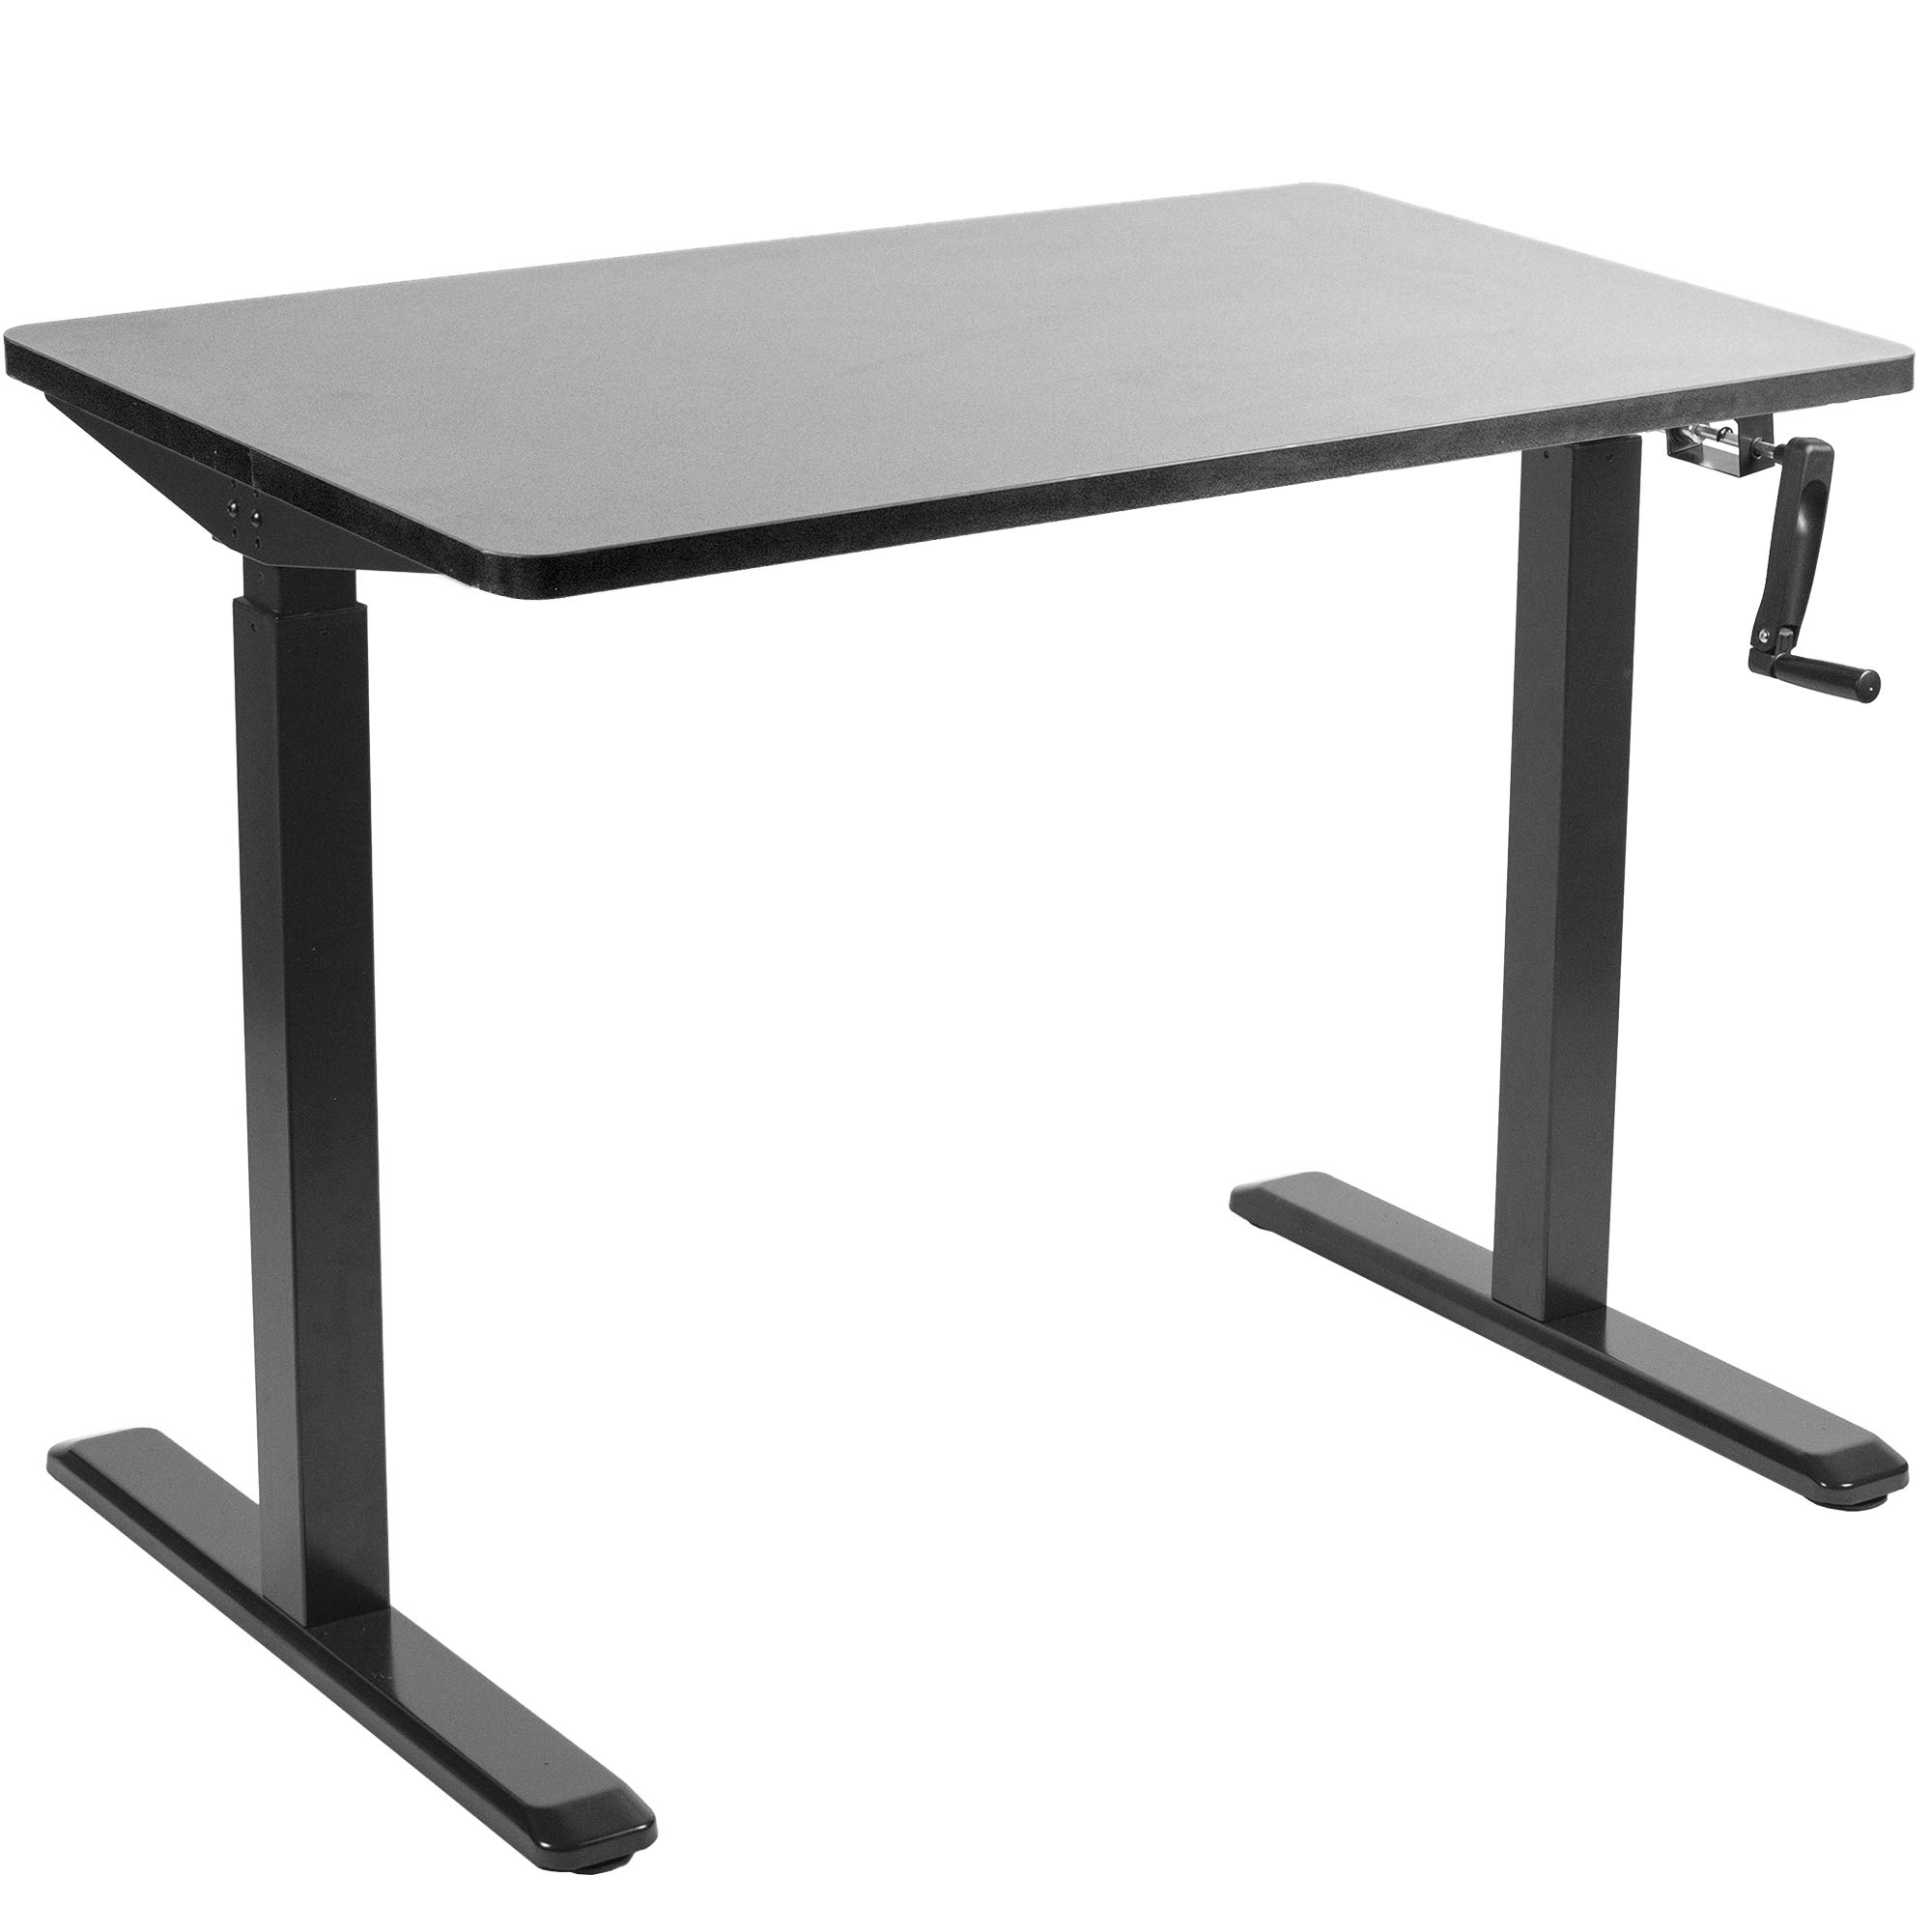 VIVO Manual 43'' x 24'' Stand Up Desk | Black Table Top, Black Frame, Height Adjustable Standing Workstation with Hand Crank (DESK-KIT-MB4B) by VIVO